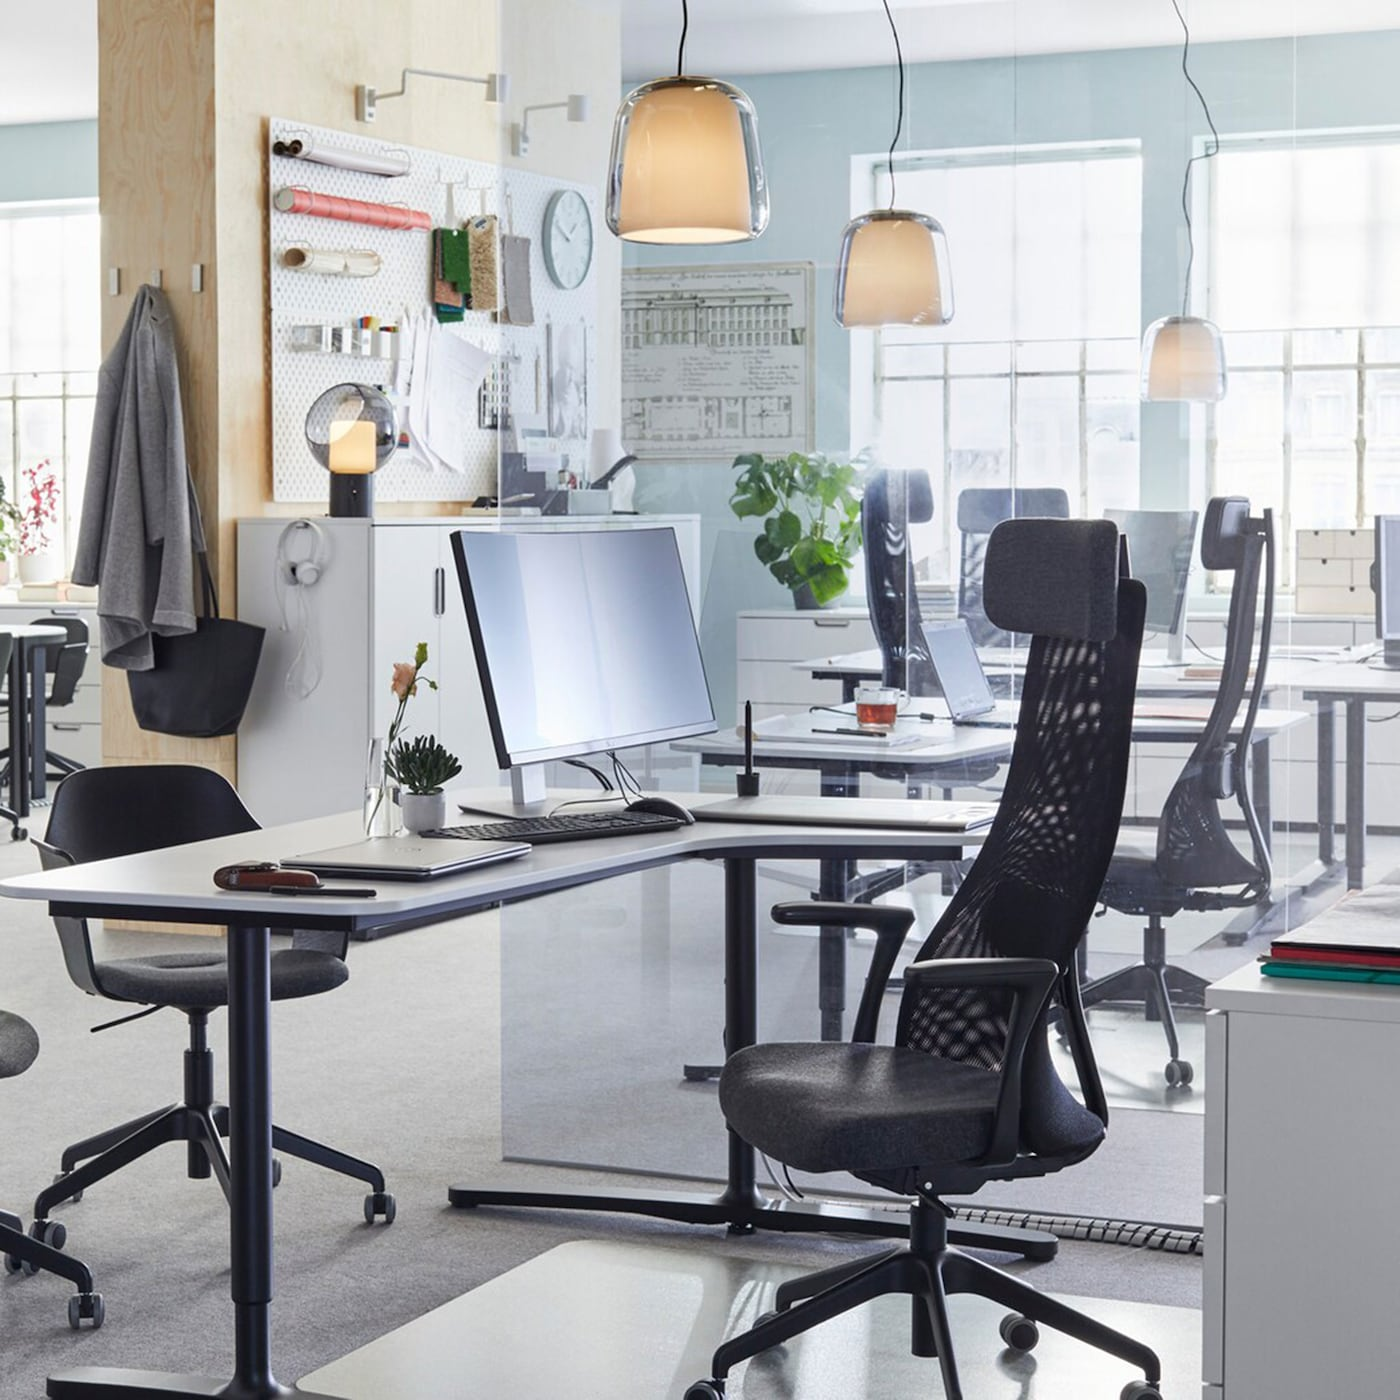 JÄRVFJÄLLET adjustable black work chairs and smooth BEKANT white sit-stand desks arranged in an open and airy office space.